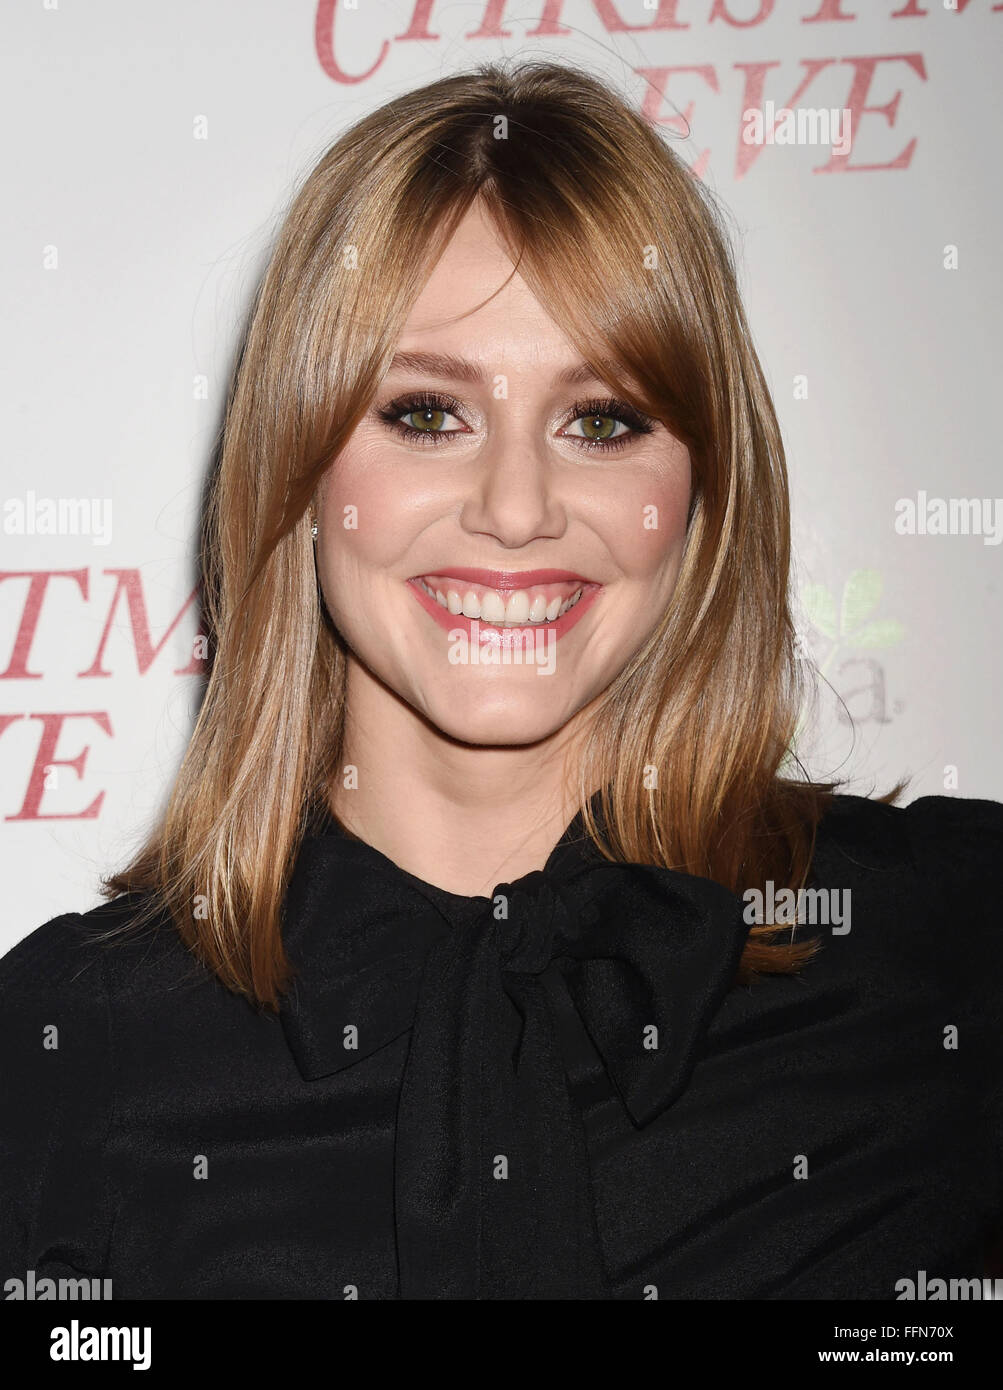 Actress Julianna Guill arrives at the premiere of Unstuck's 'Christmas Eve' at the ArcLight Hollywood - Stock Image